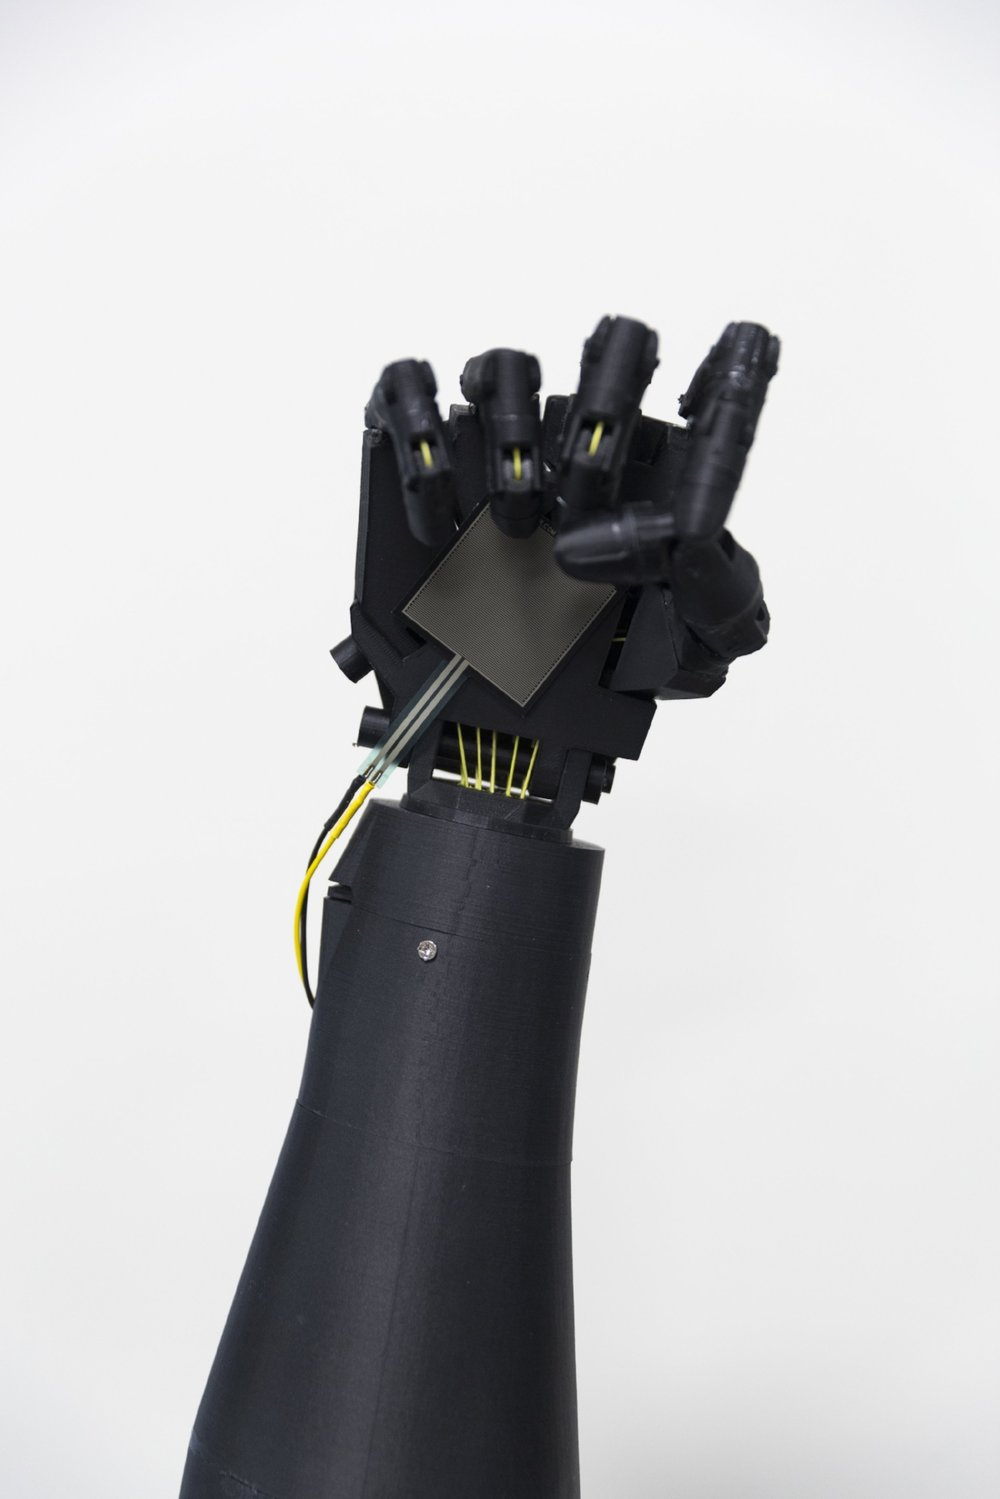 3D Printed hand equipped with a pressure sensor